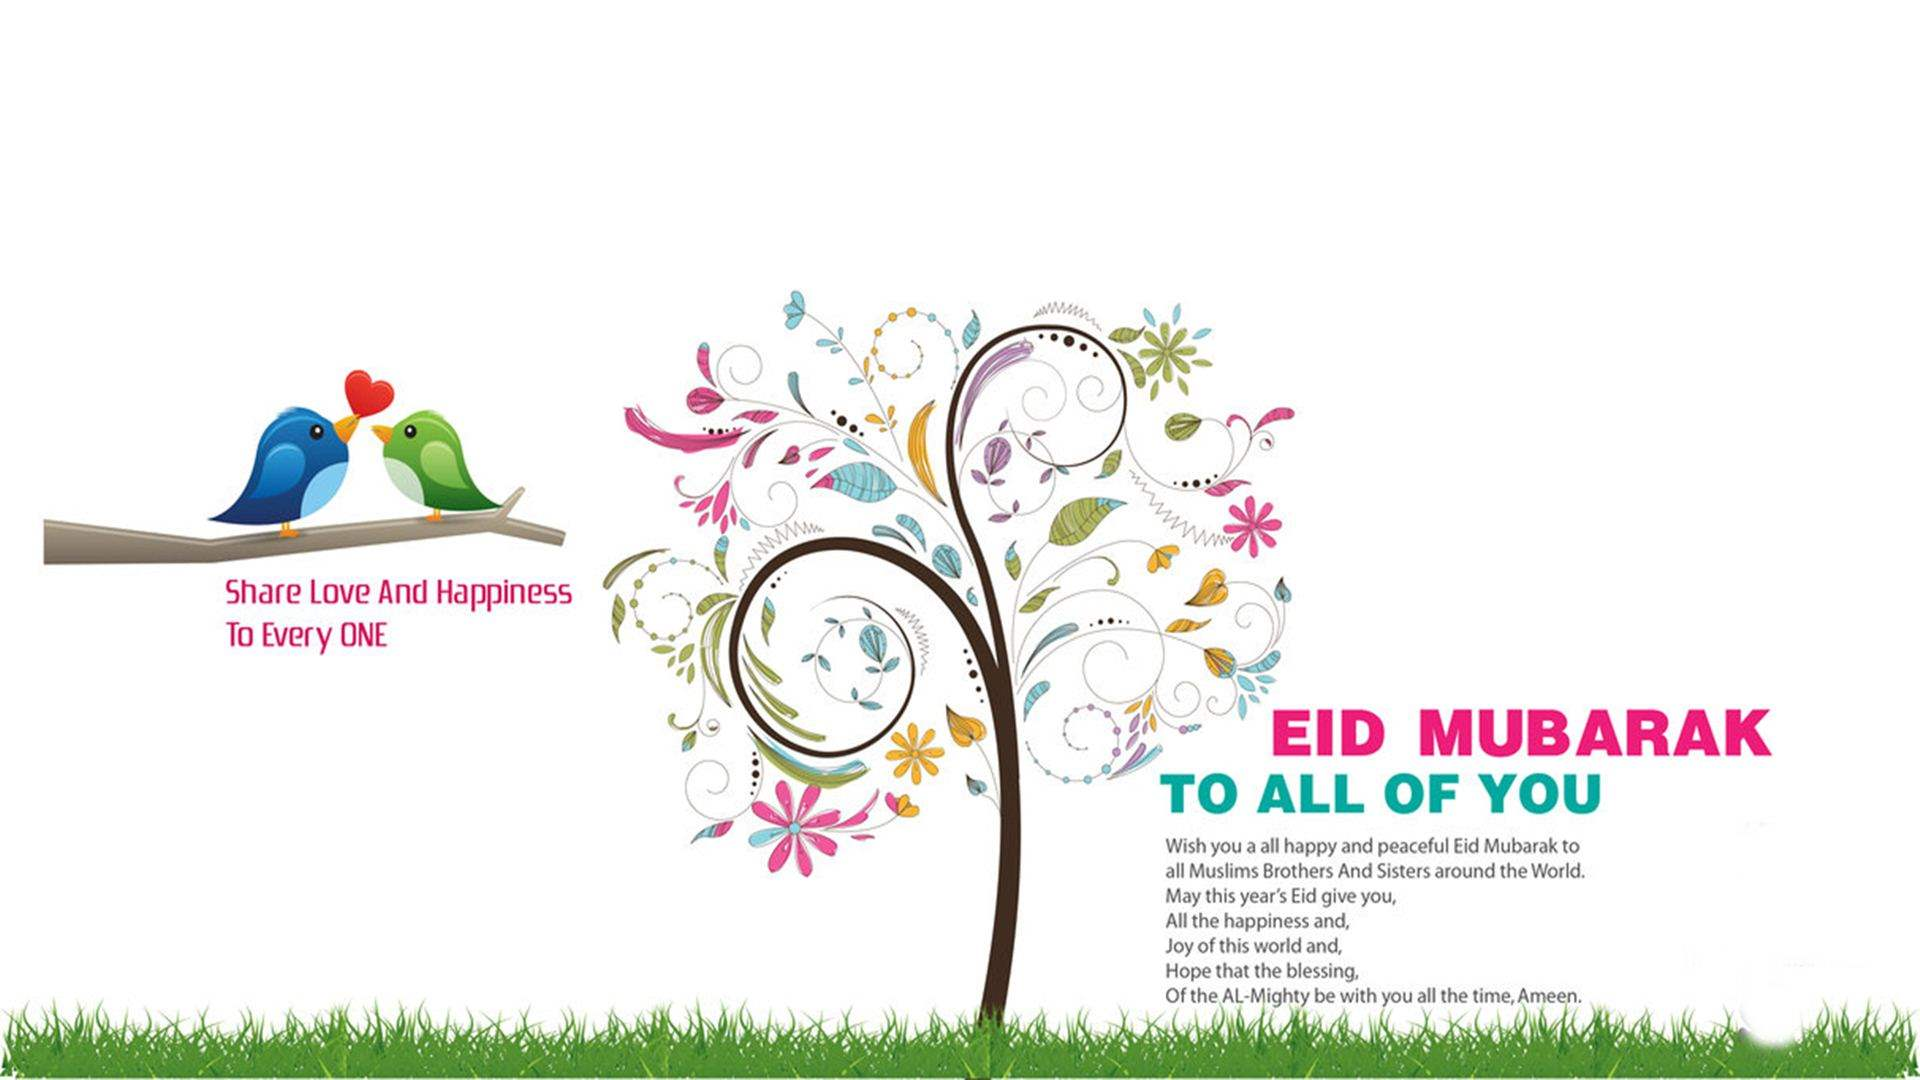 Eid mubarak 2015 greeting cards and messages download eid mubarak 2015 greeting cards and messages kristyandbryce Image collections